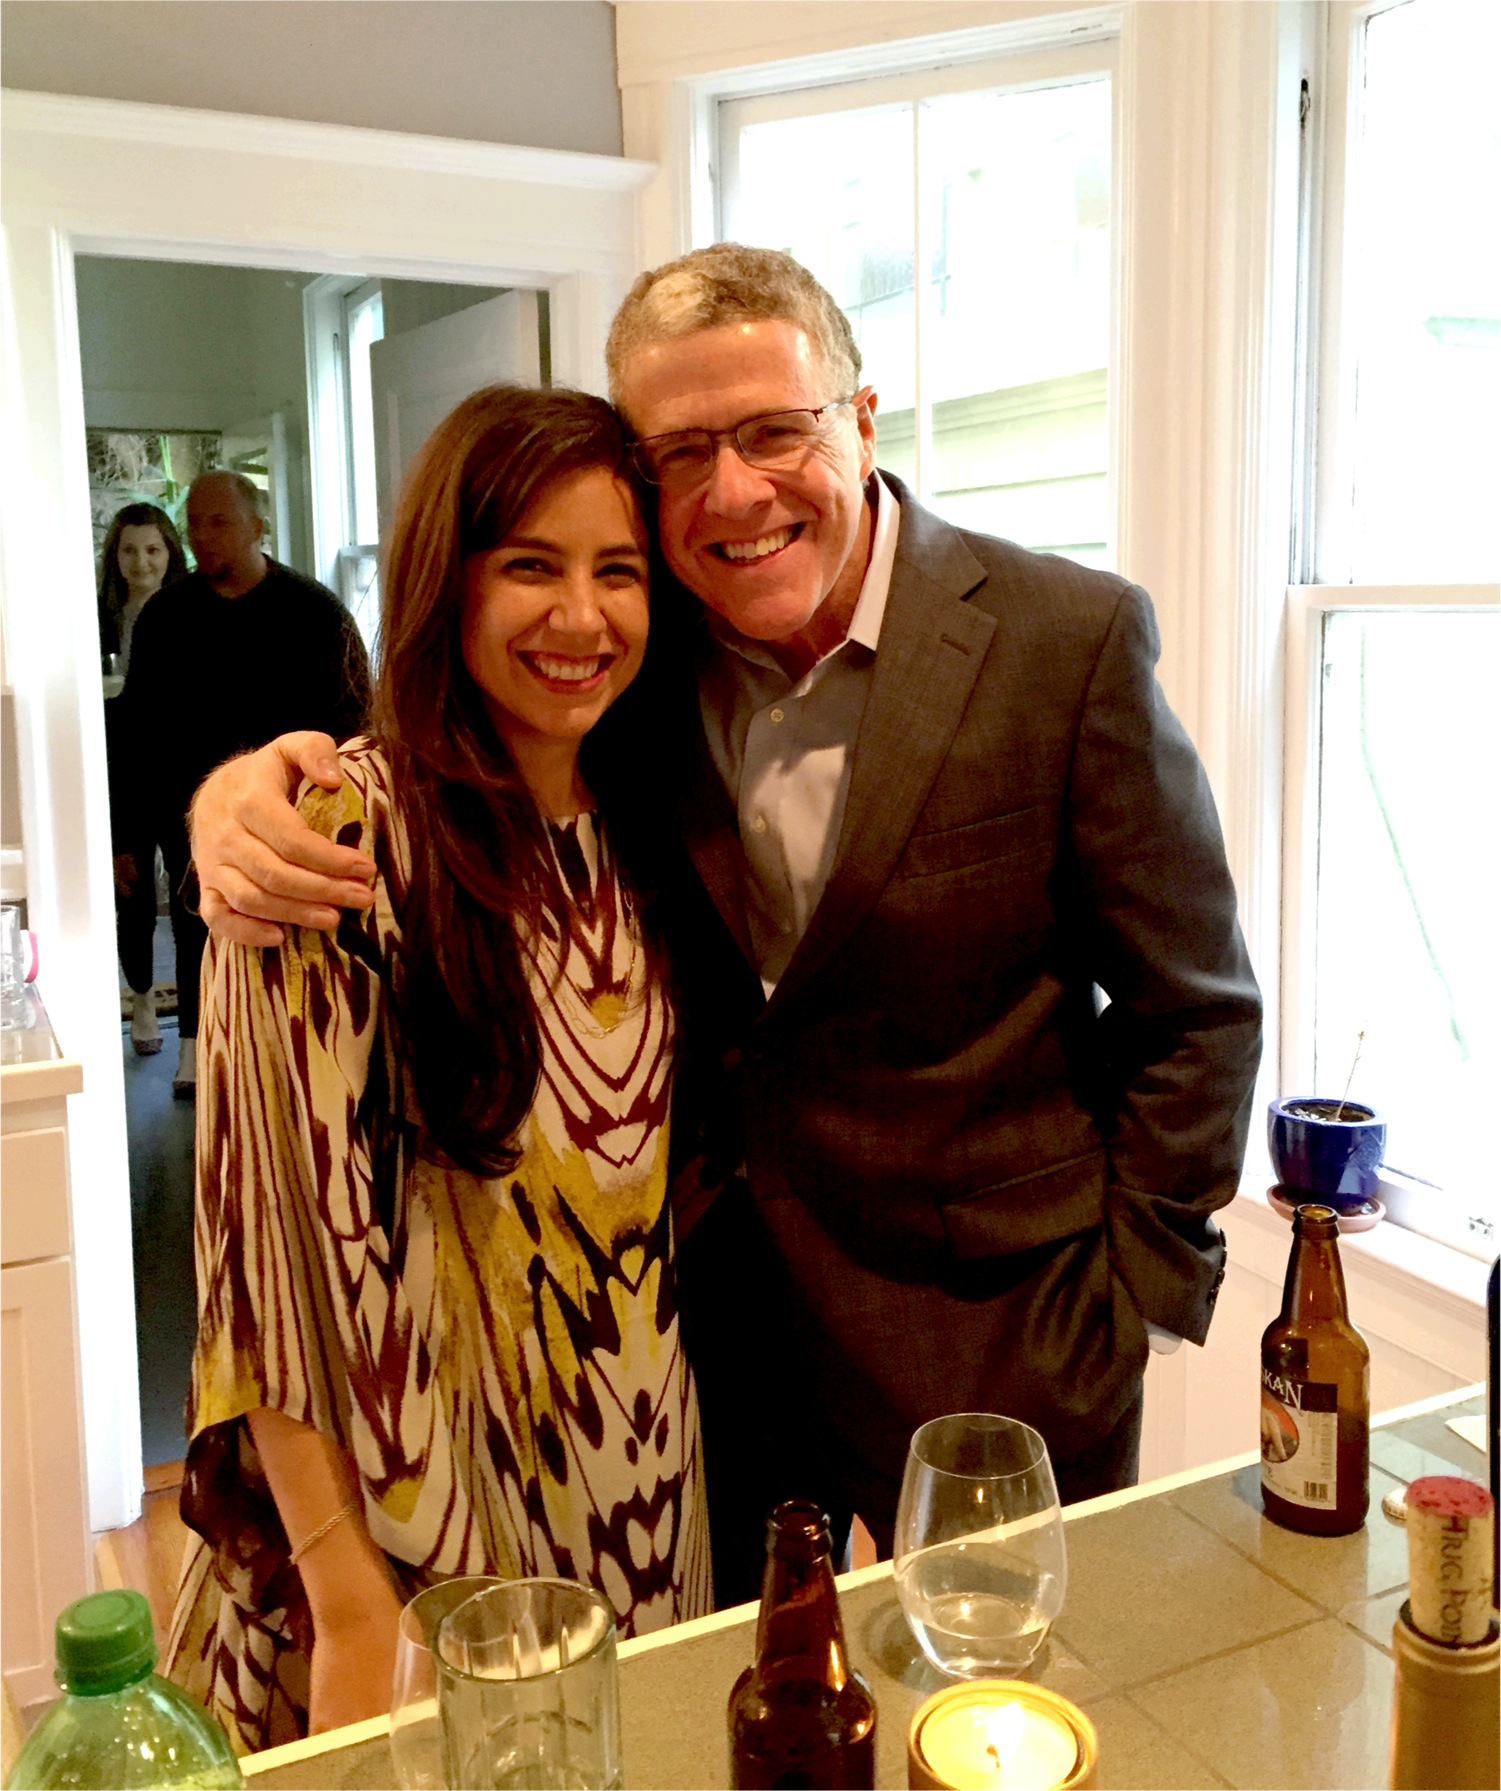 Laura King with her dad, Peter King. Laura recently married her partner and Peter was there with love and support.